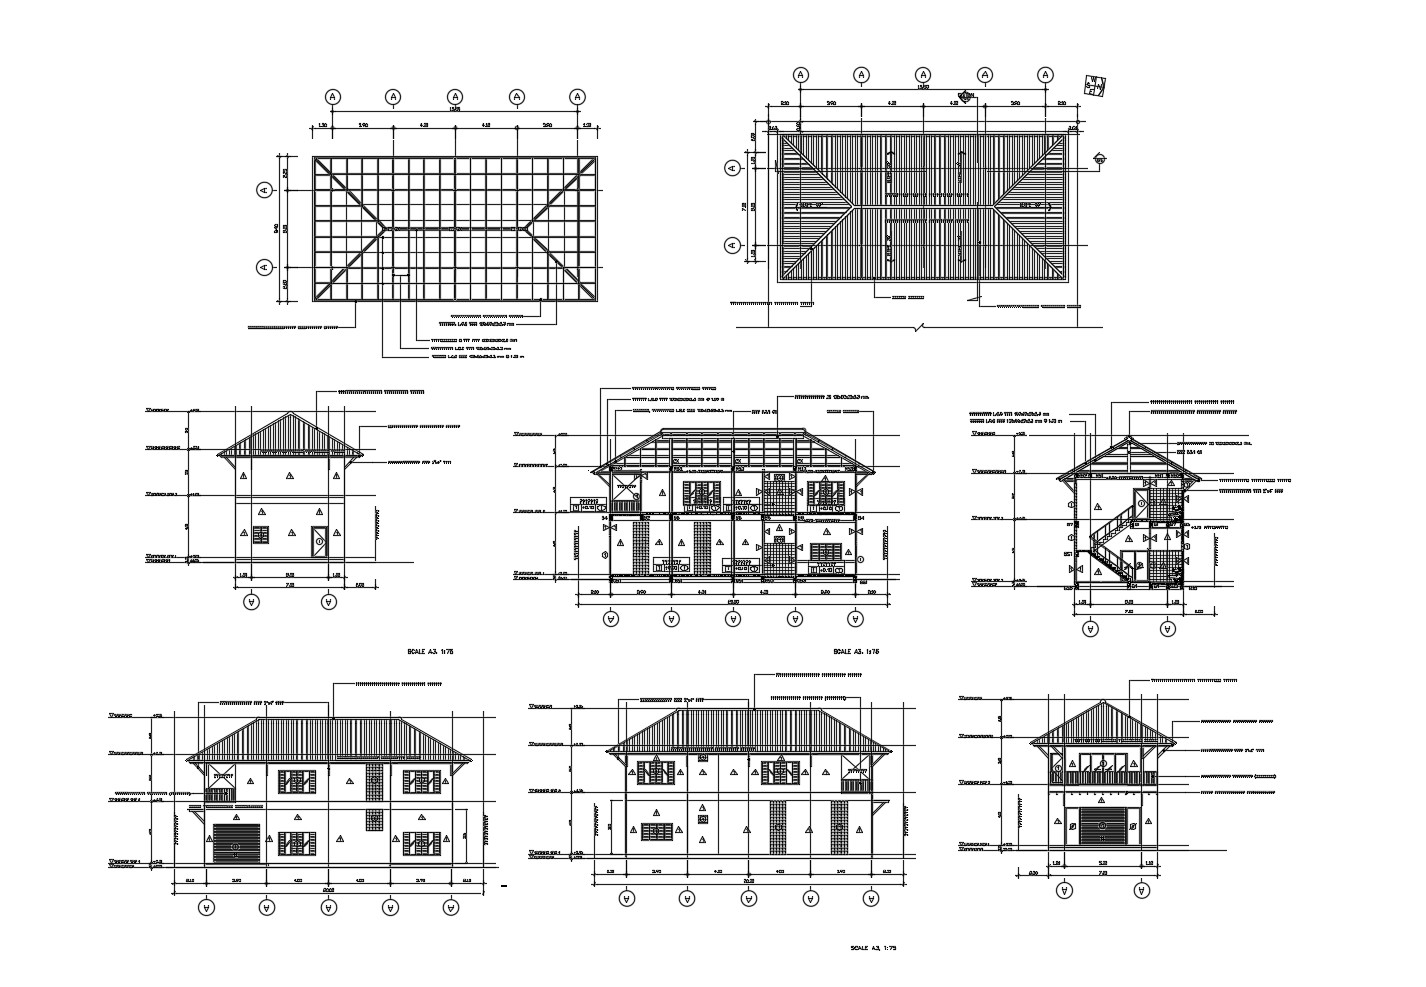 Autocad drawing of roof plan with sections and elevation